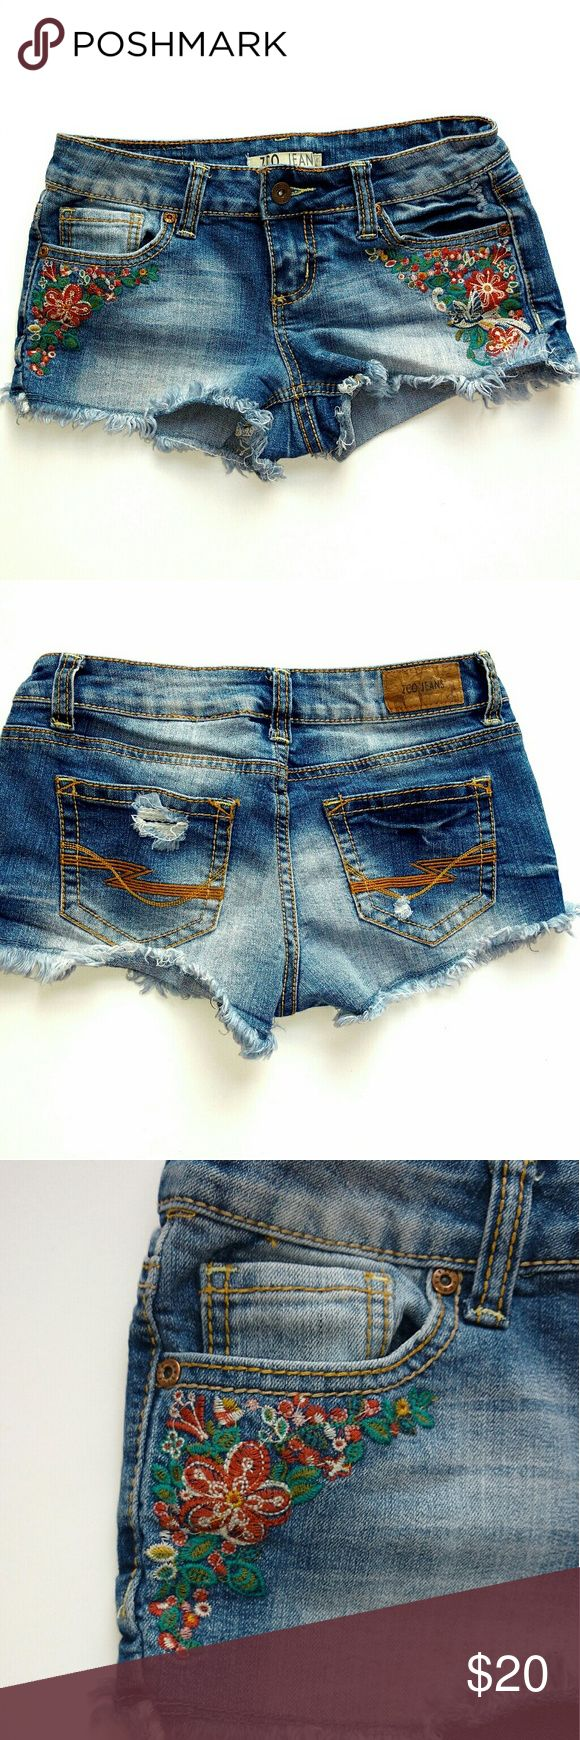 "ZCO Jeans Embroidered Denim Cut-off Short Shorts Excellent worn condition, Factory destroyed. Super cute shorts. I have 2 pairs of size 5 junior denim cut off shorts posted, bundle for a deal! Measurements  Waist (flat) 15"" Rise 7.5"" Length 9"" Inseam 2"" ZCO Shorts Jean Shorts"